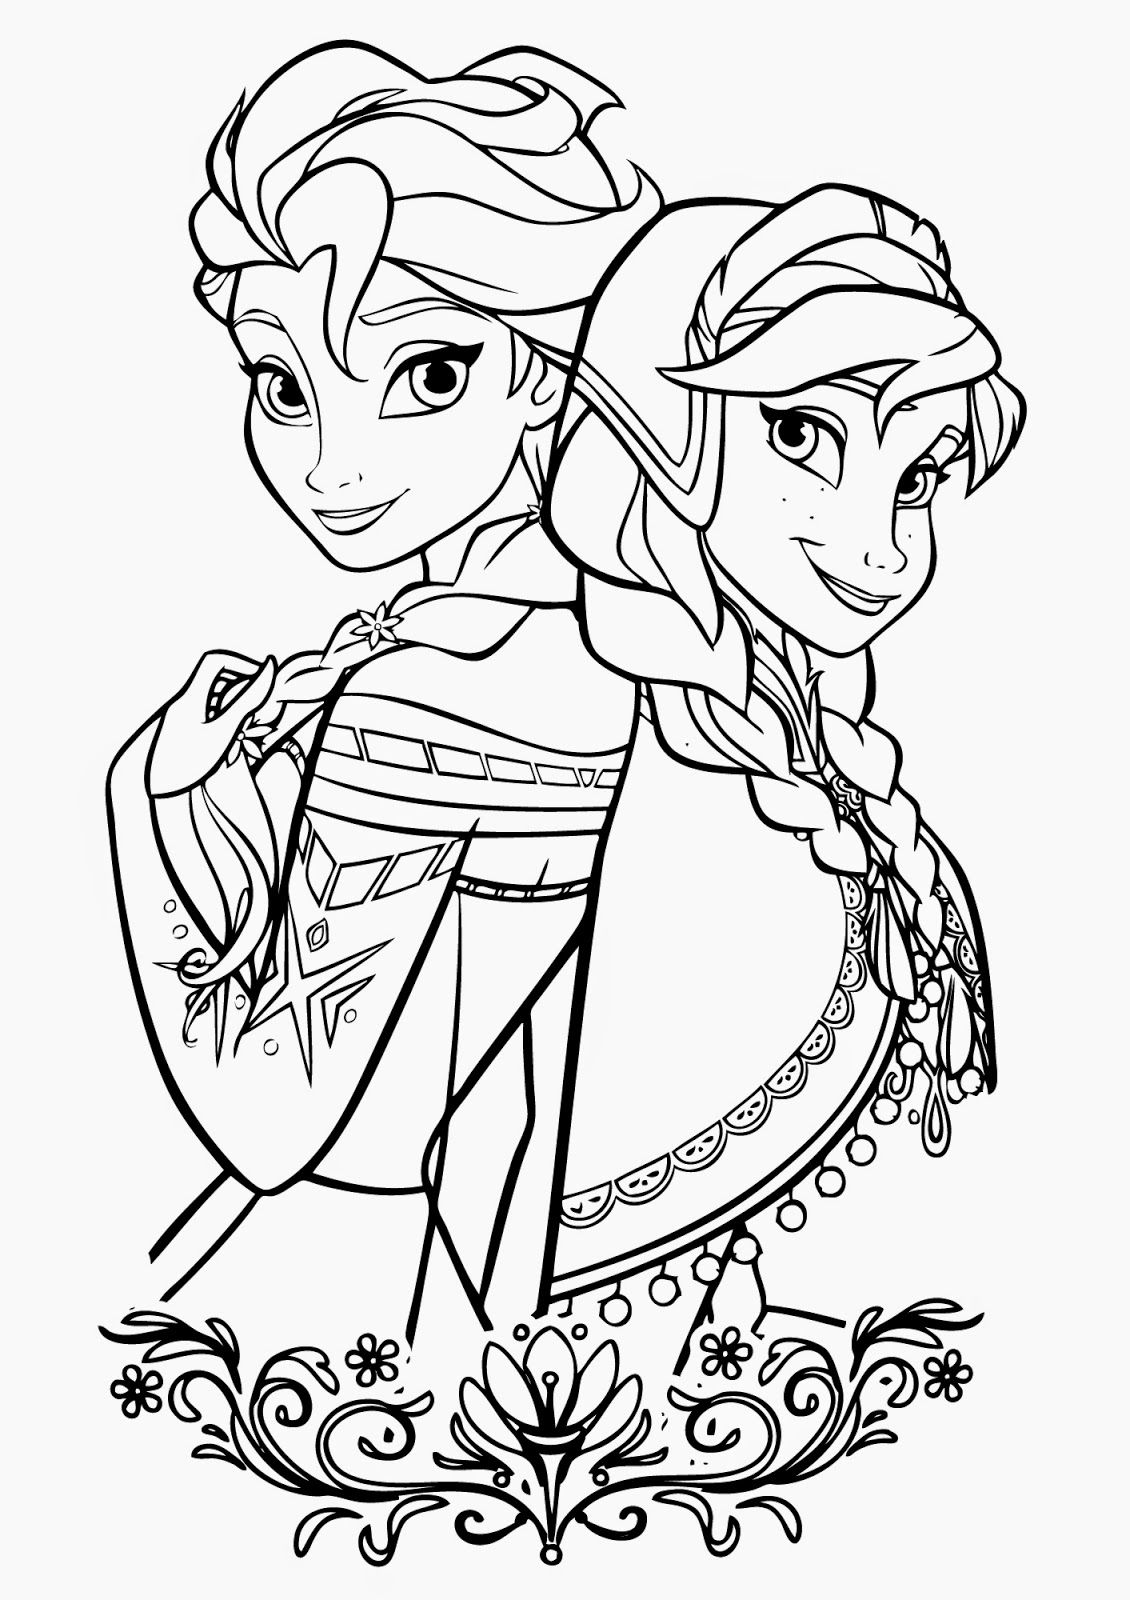 Frozen Coloring Sheets All Characters Famous Walt